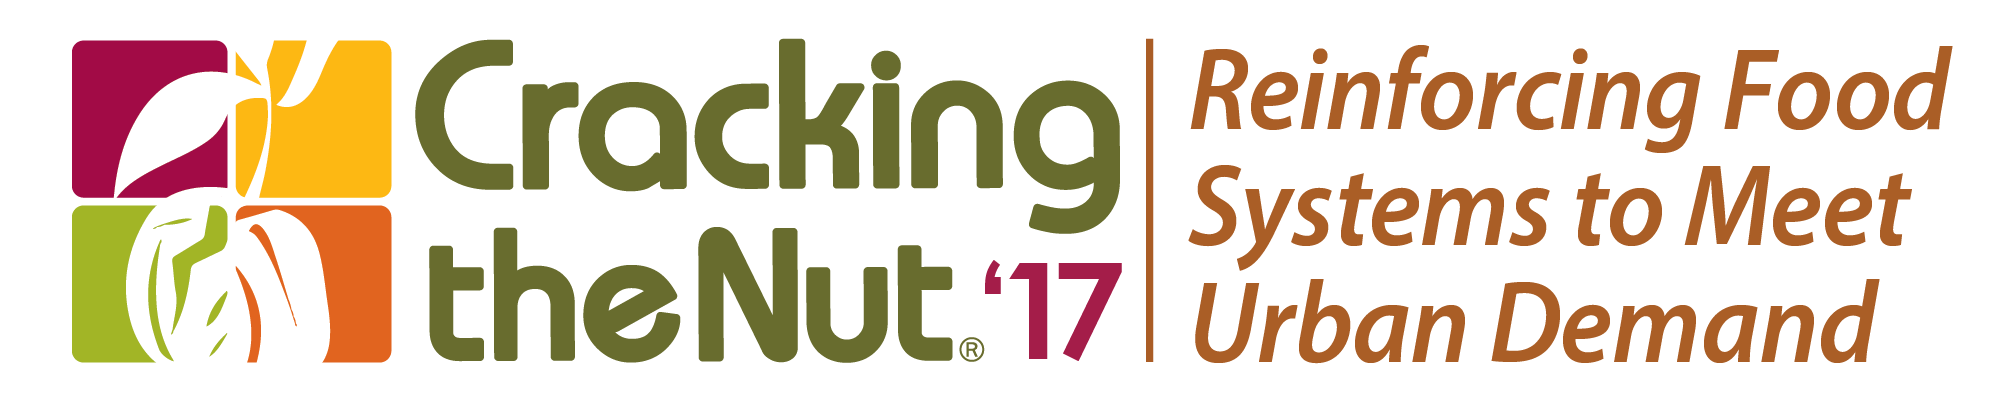 Cracking the Nut Conference, March 27-28, 2017